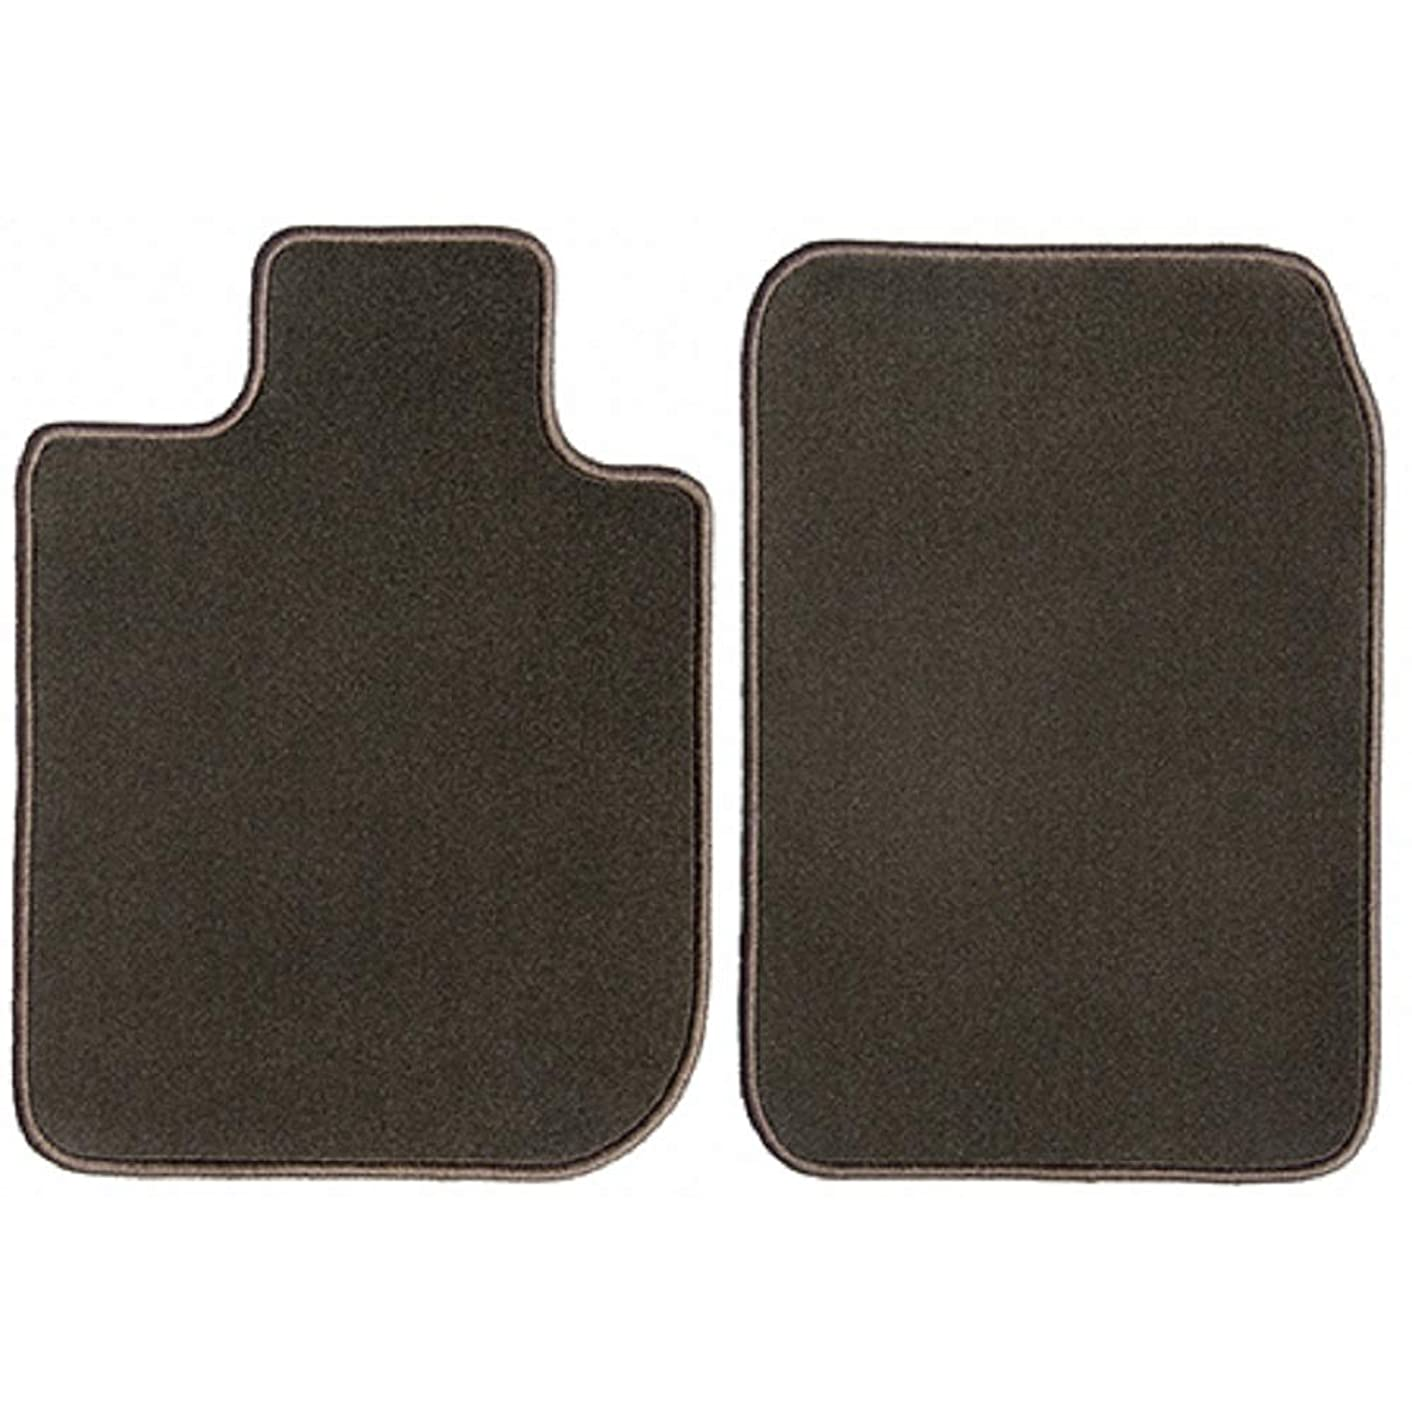 GGBAILEY D3113A-F1A-CH-BR Custom Fit Automotive Carpet Floor Mats for 1990, 1991, 1992, 1993 Geo Storm Chocolate Brown Driver & Passenger